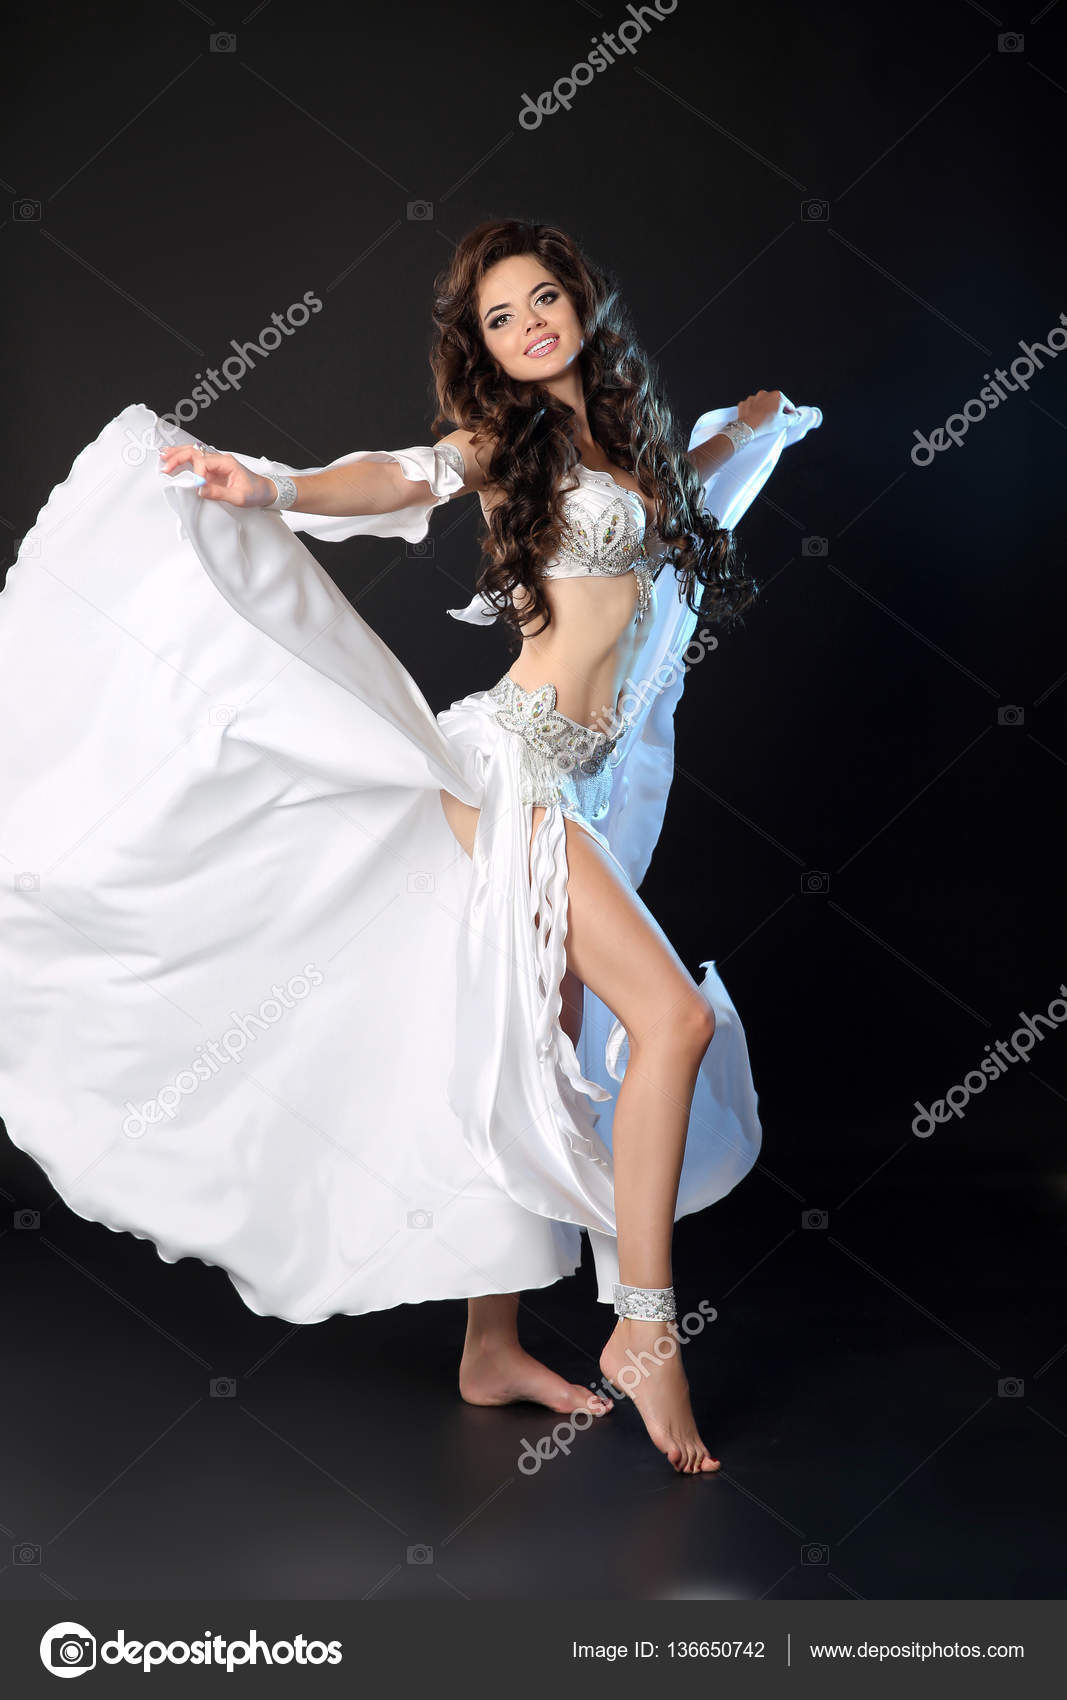 Bellydance Beautiful Arabic Sexy Belly Dancer In Blowing White Dress Dancing Isolated On Black Studio Background Attractive Smiling Turkish Female